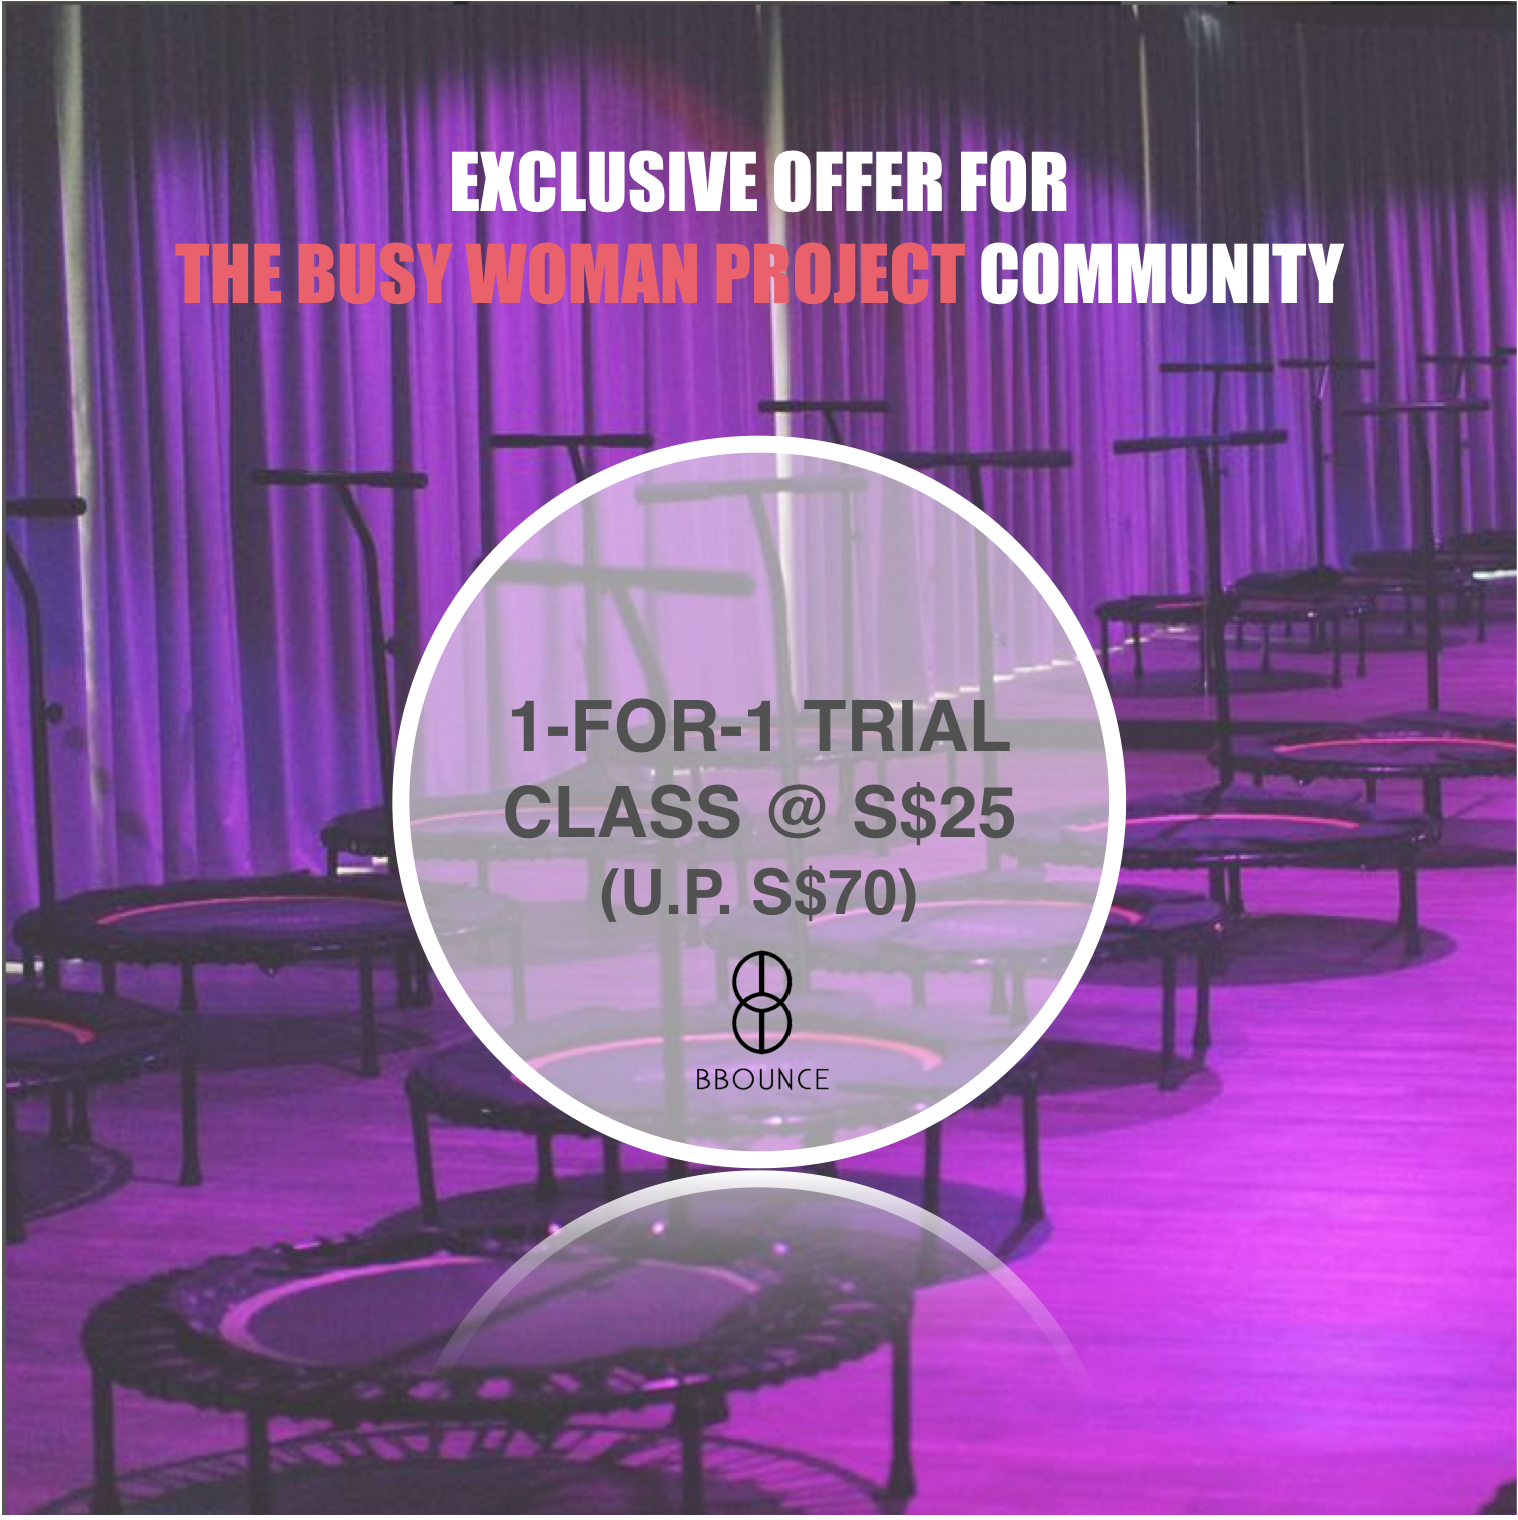 BBOUNCE Studio Singapore X #TEAMBUSYWOMAN: Exclusive 1-for-1 trial class limited offer @ S$25 (U.P. S$70)